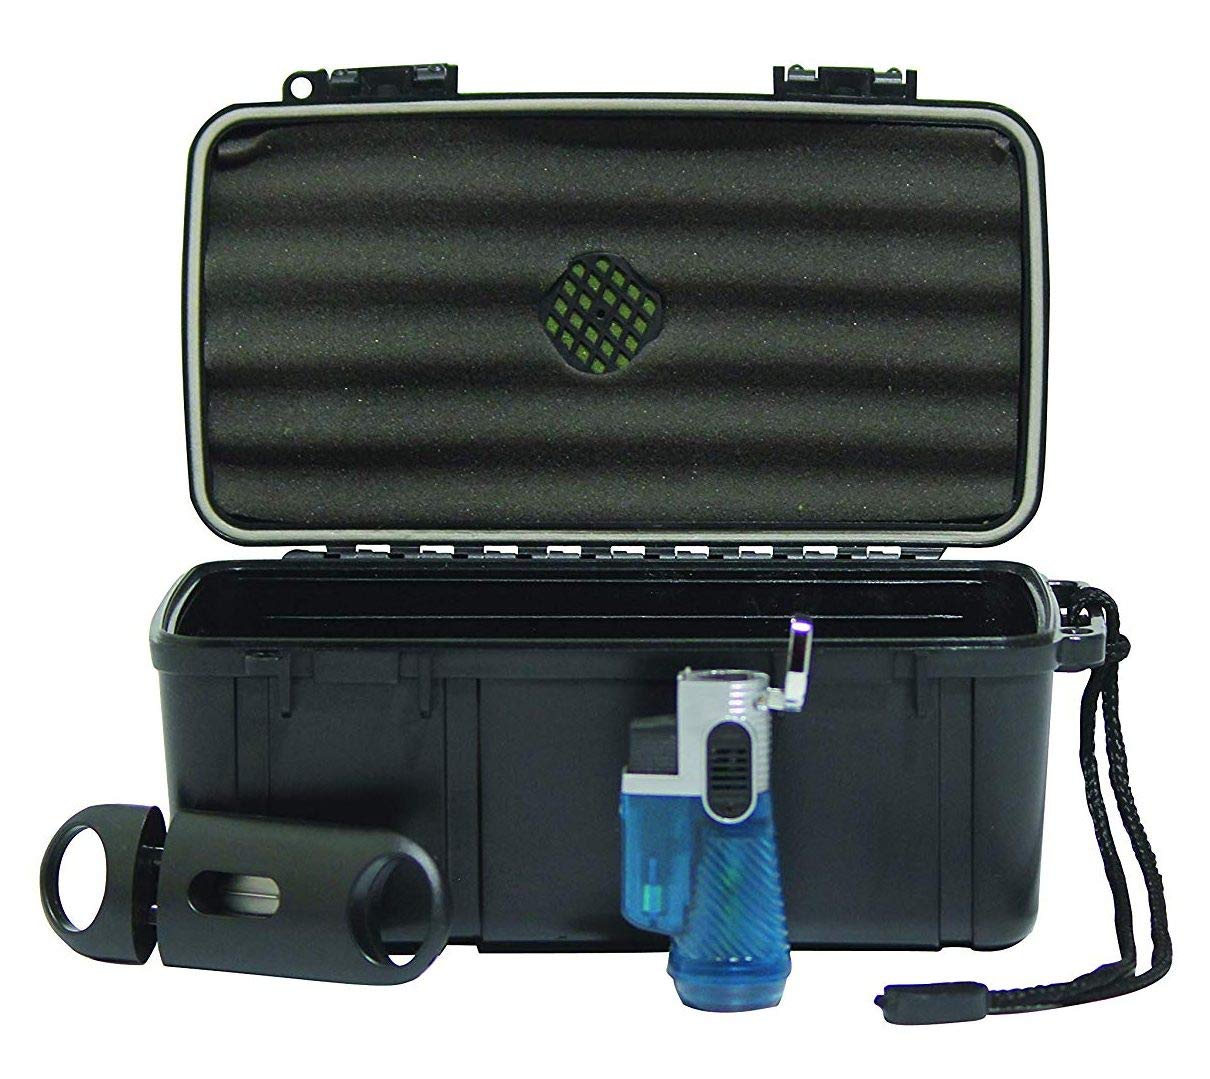 F.e.s.s Fess Trident Medium Gift Set Holds up to 15ct Travel Cigar Humidor Waterproof Holder Case With 3Torch/V-Cut Cigar Cutter Set